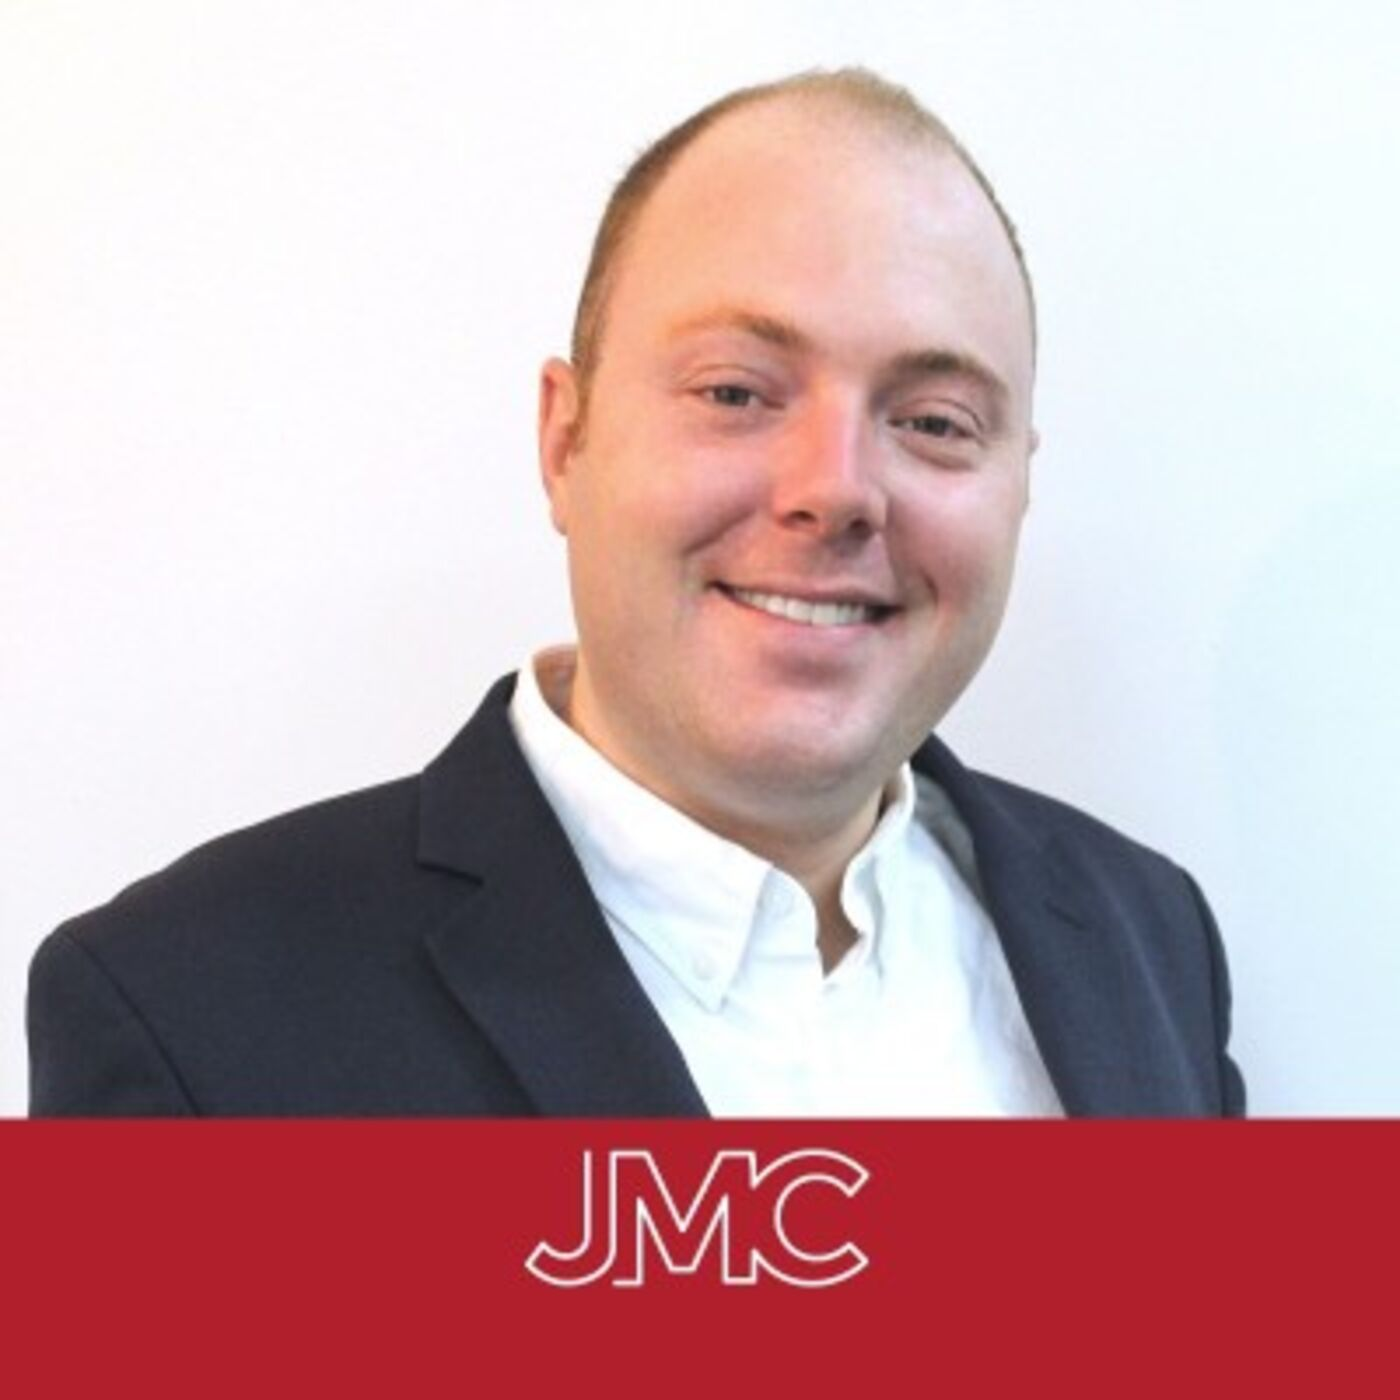 #44 CEO of U.K.'s #1 Legal Recruitment agency, Jason Connolly builds a strong team culture primed for success